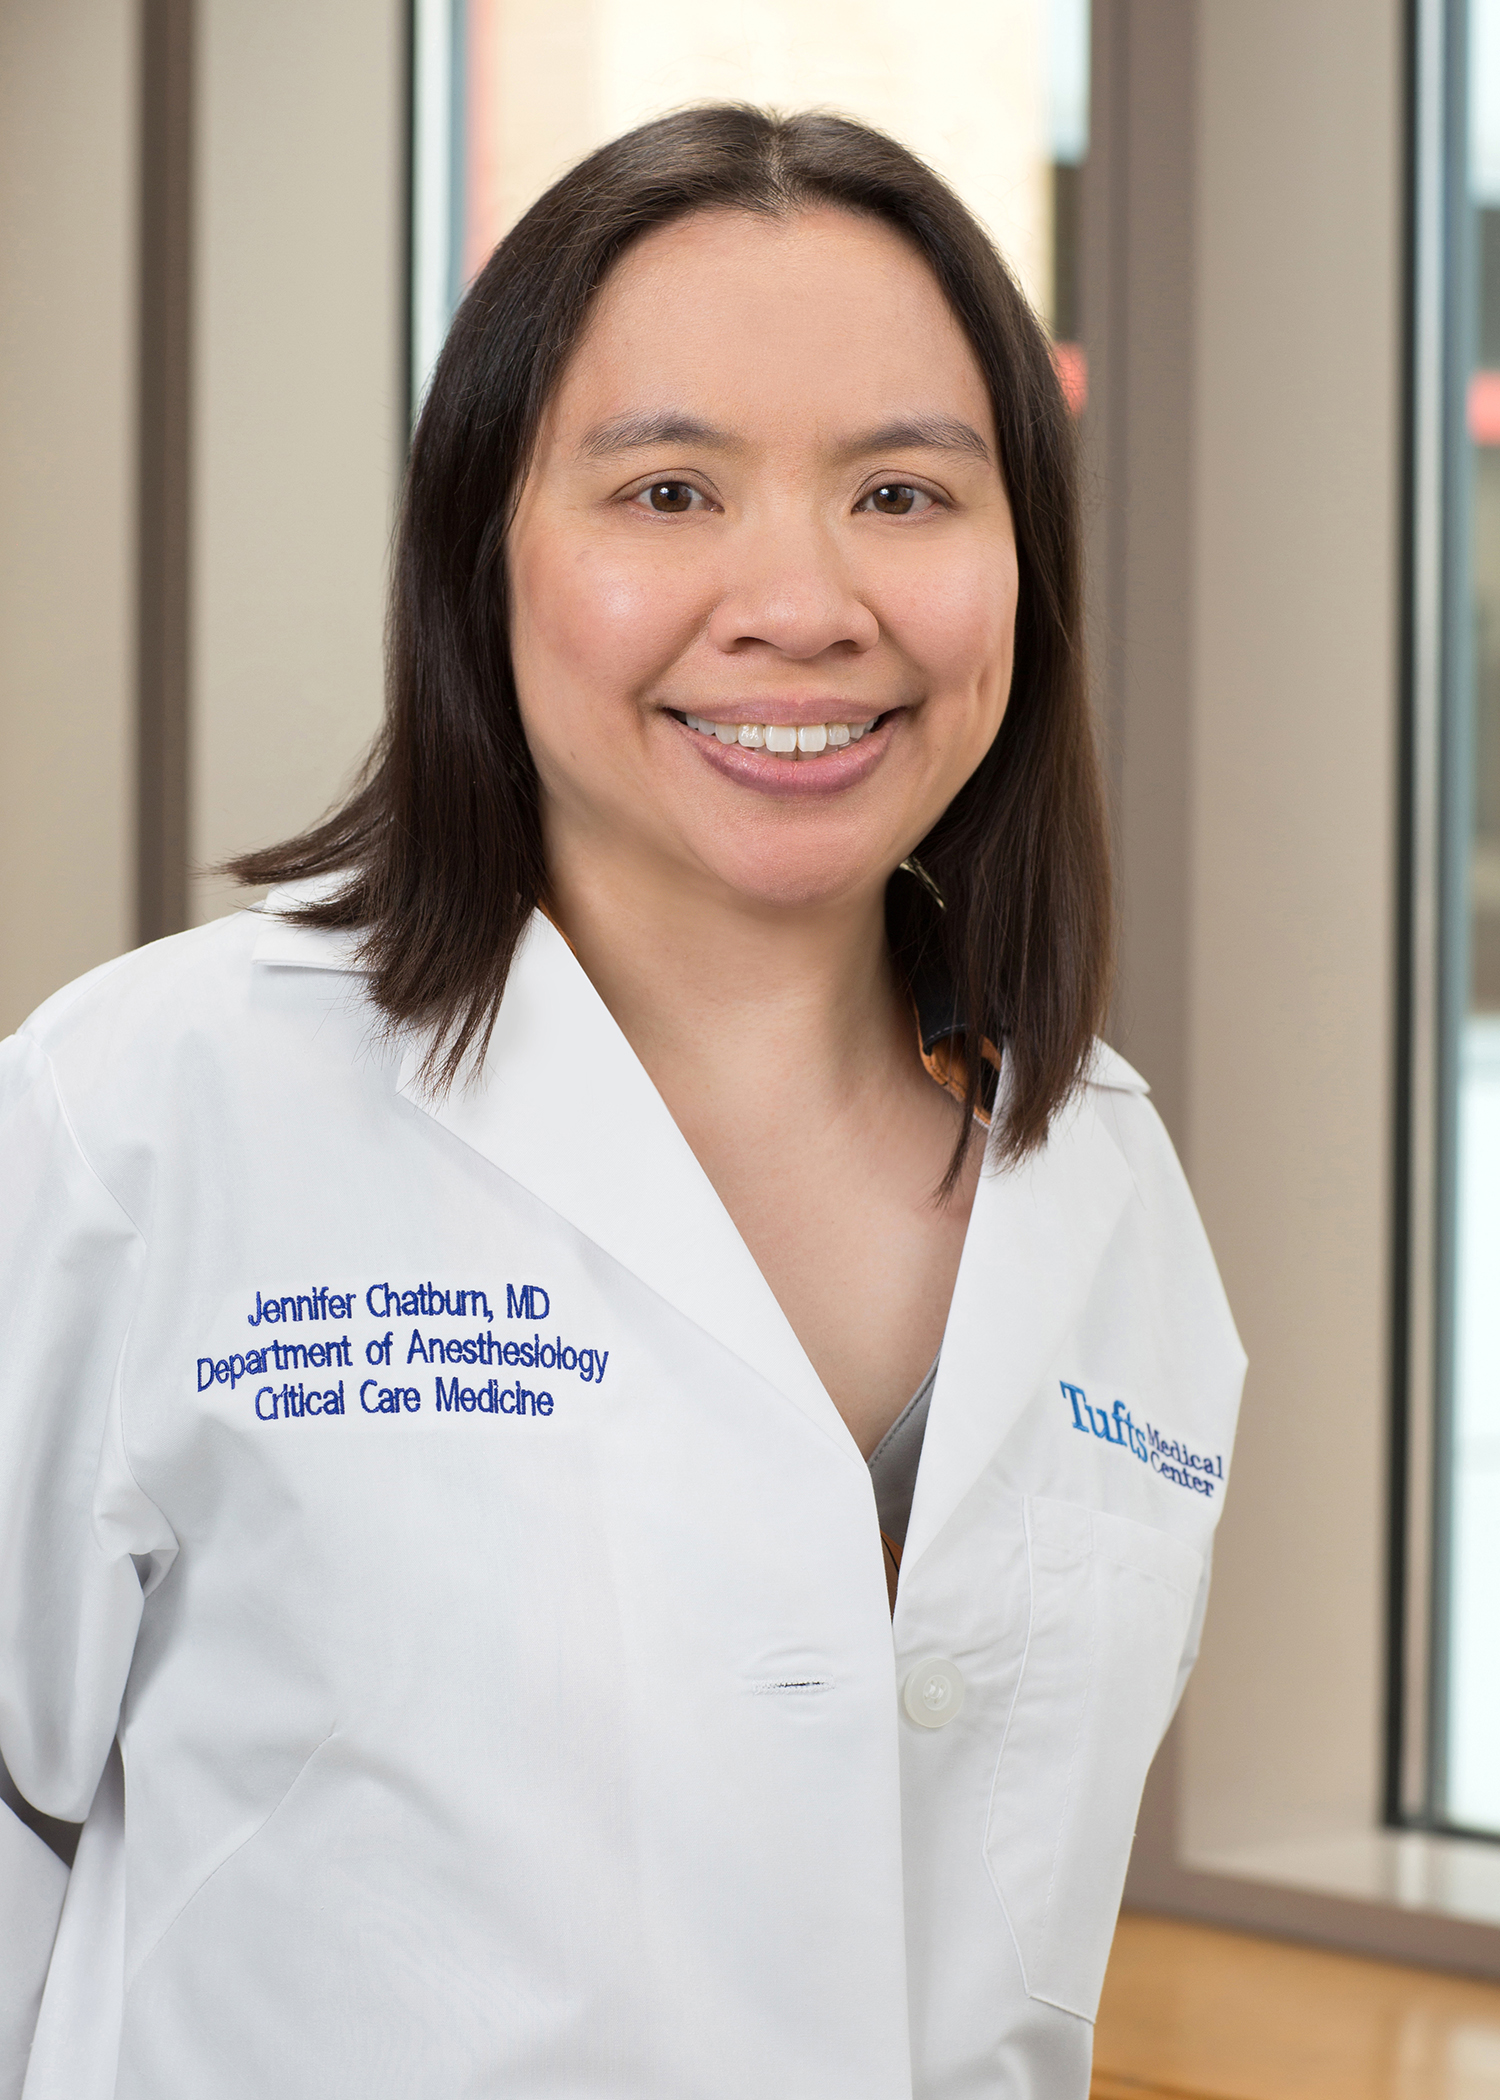 Jennifer A. Chatburn, MD